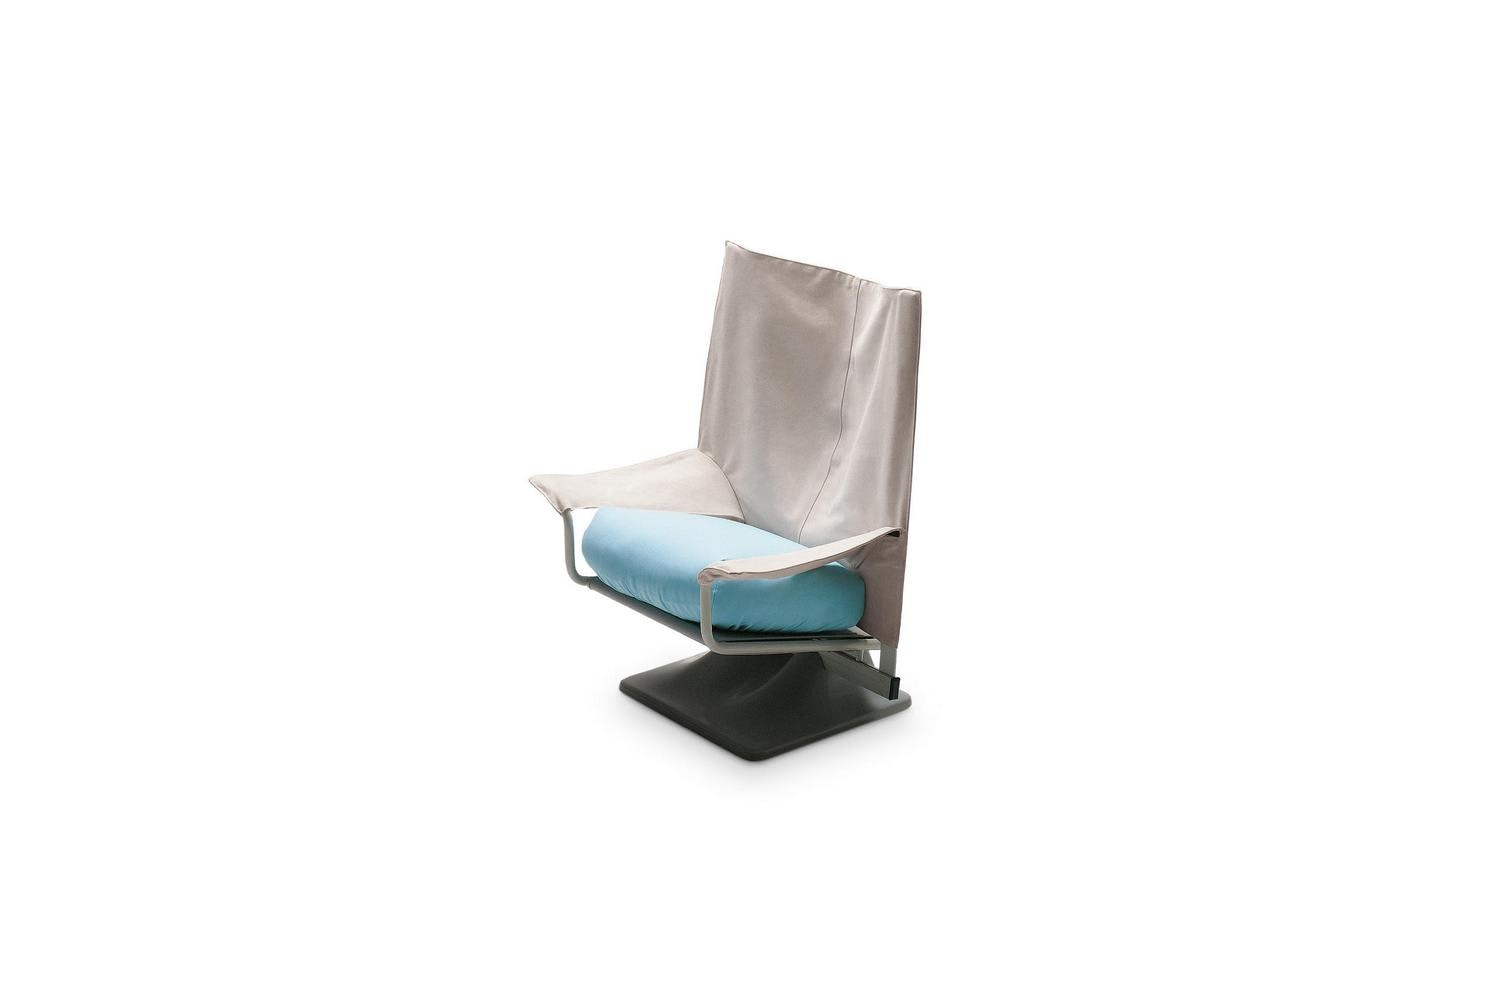 650 AEO Armchair by Paolo Deganello for Cassina